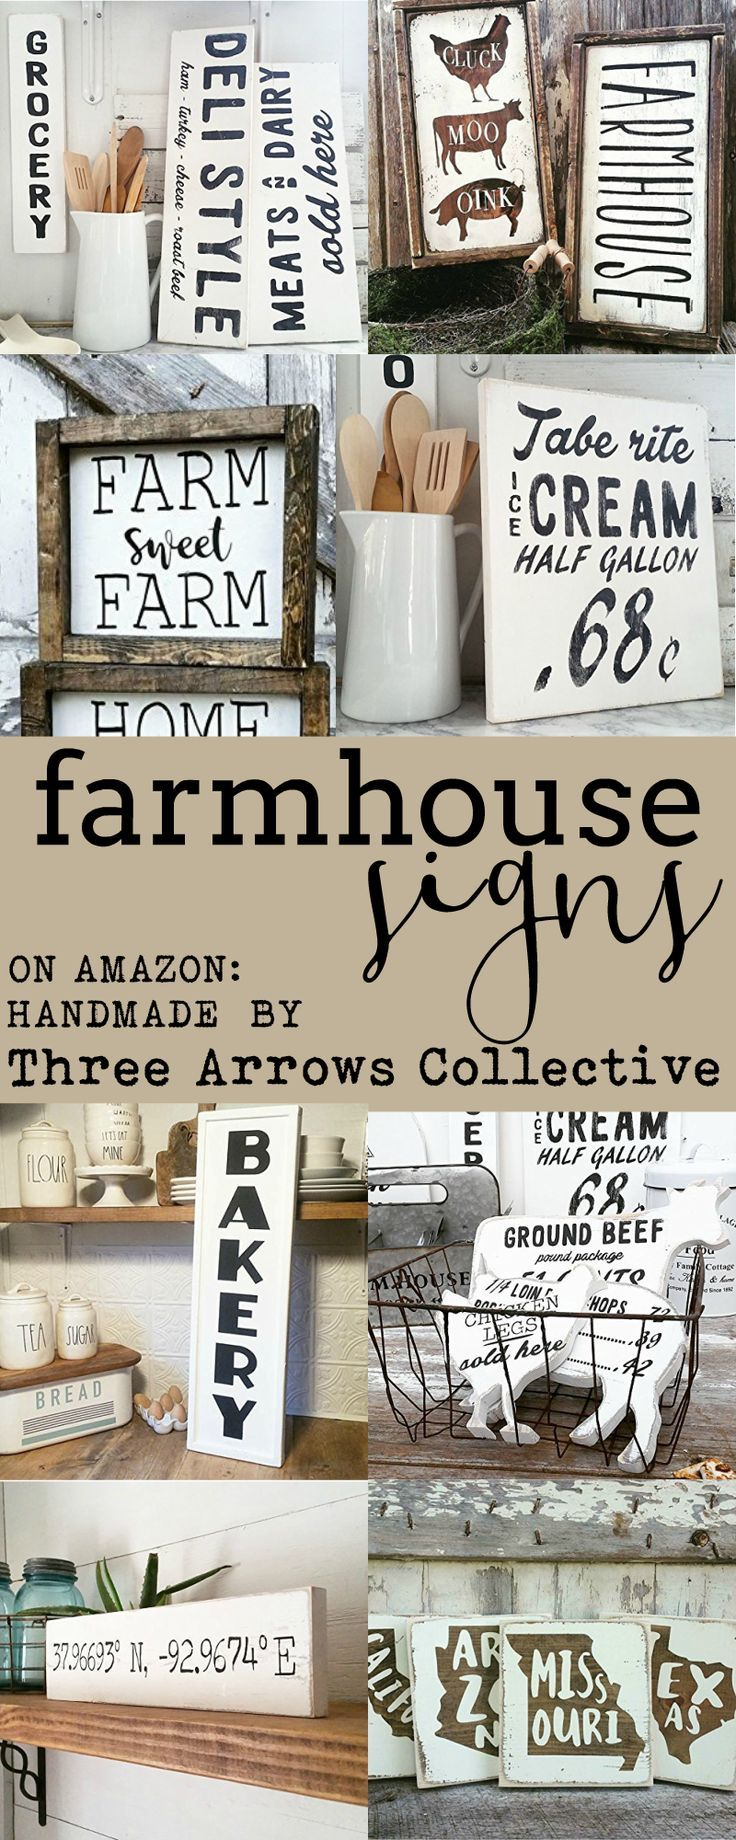 Custom Wood Signs for The Home (With images) Country